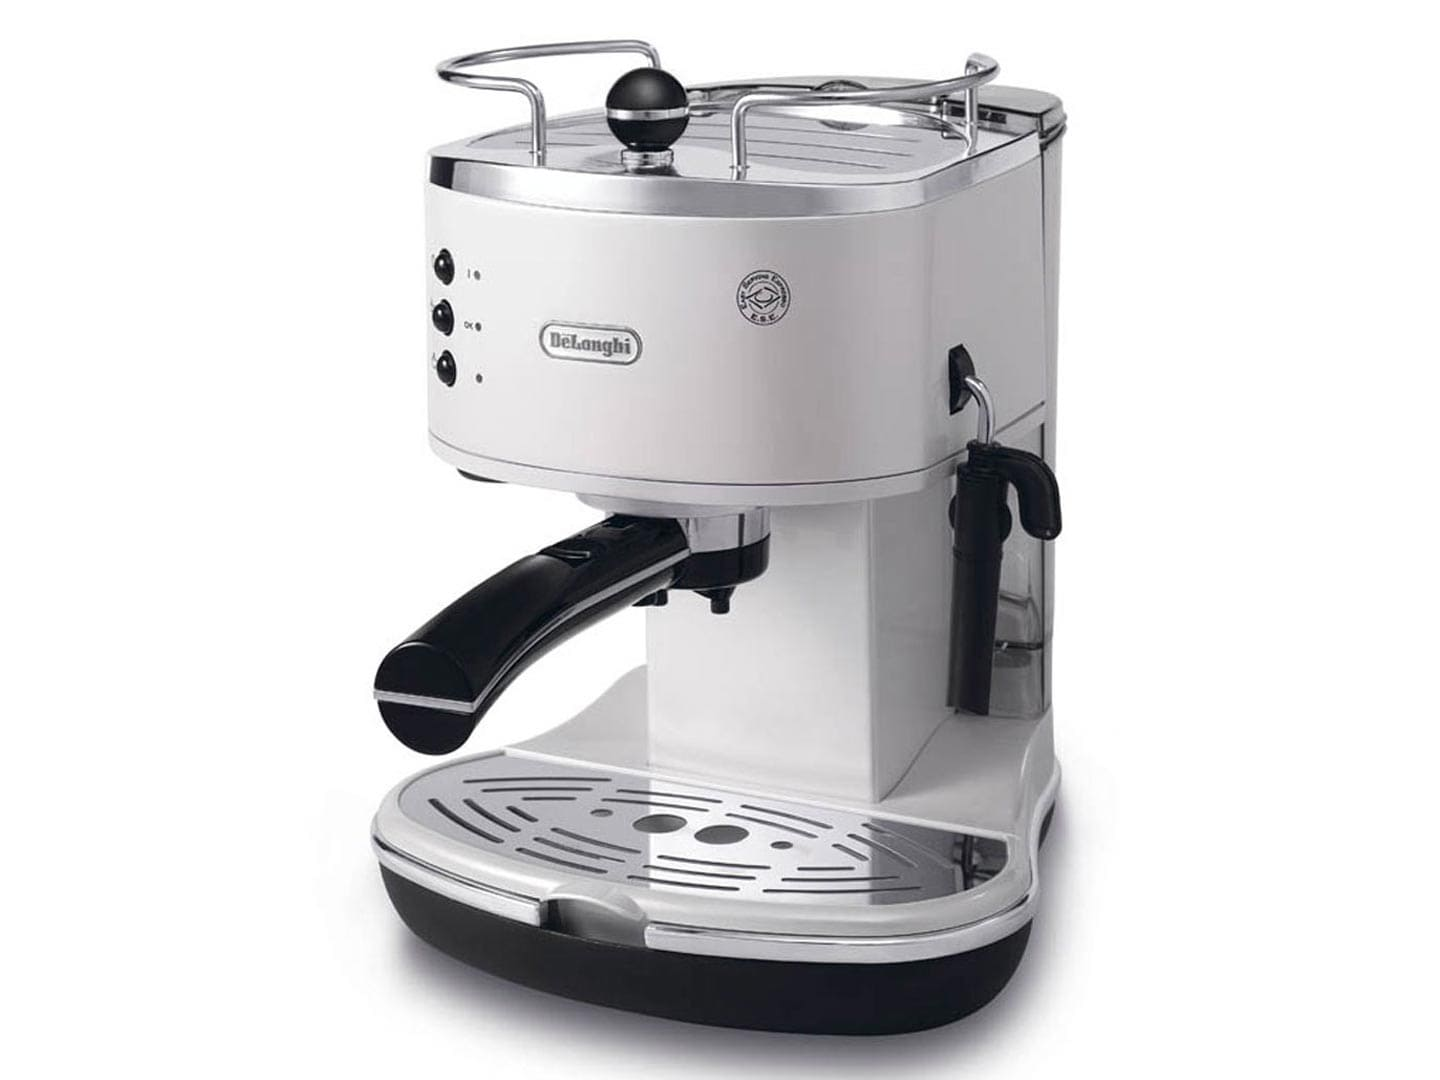 ECO310W Icona Pump Espresso - White with manual milk frothing wand